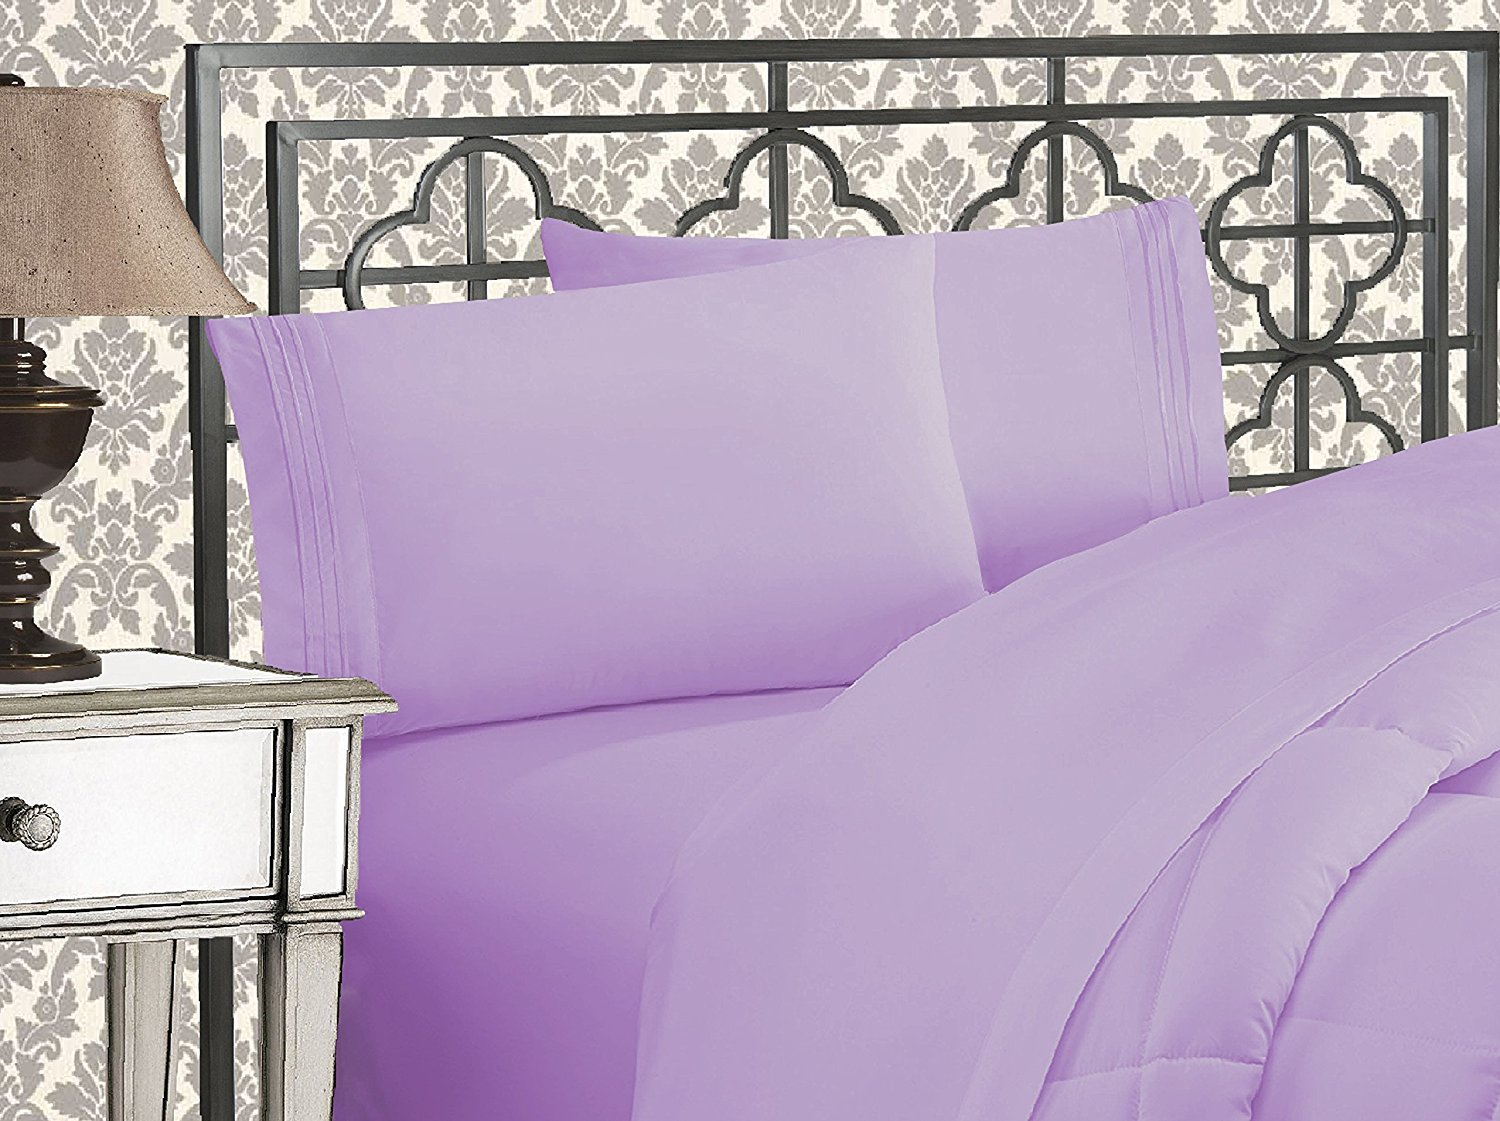 Elegant Comfort 1500 Thread Count Wrinkle Resistant Egyptian Quality Ultra Soft Luxurious 4-Piece Bed Sheet Set, Full, Lilac